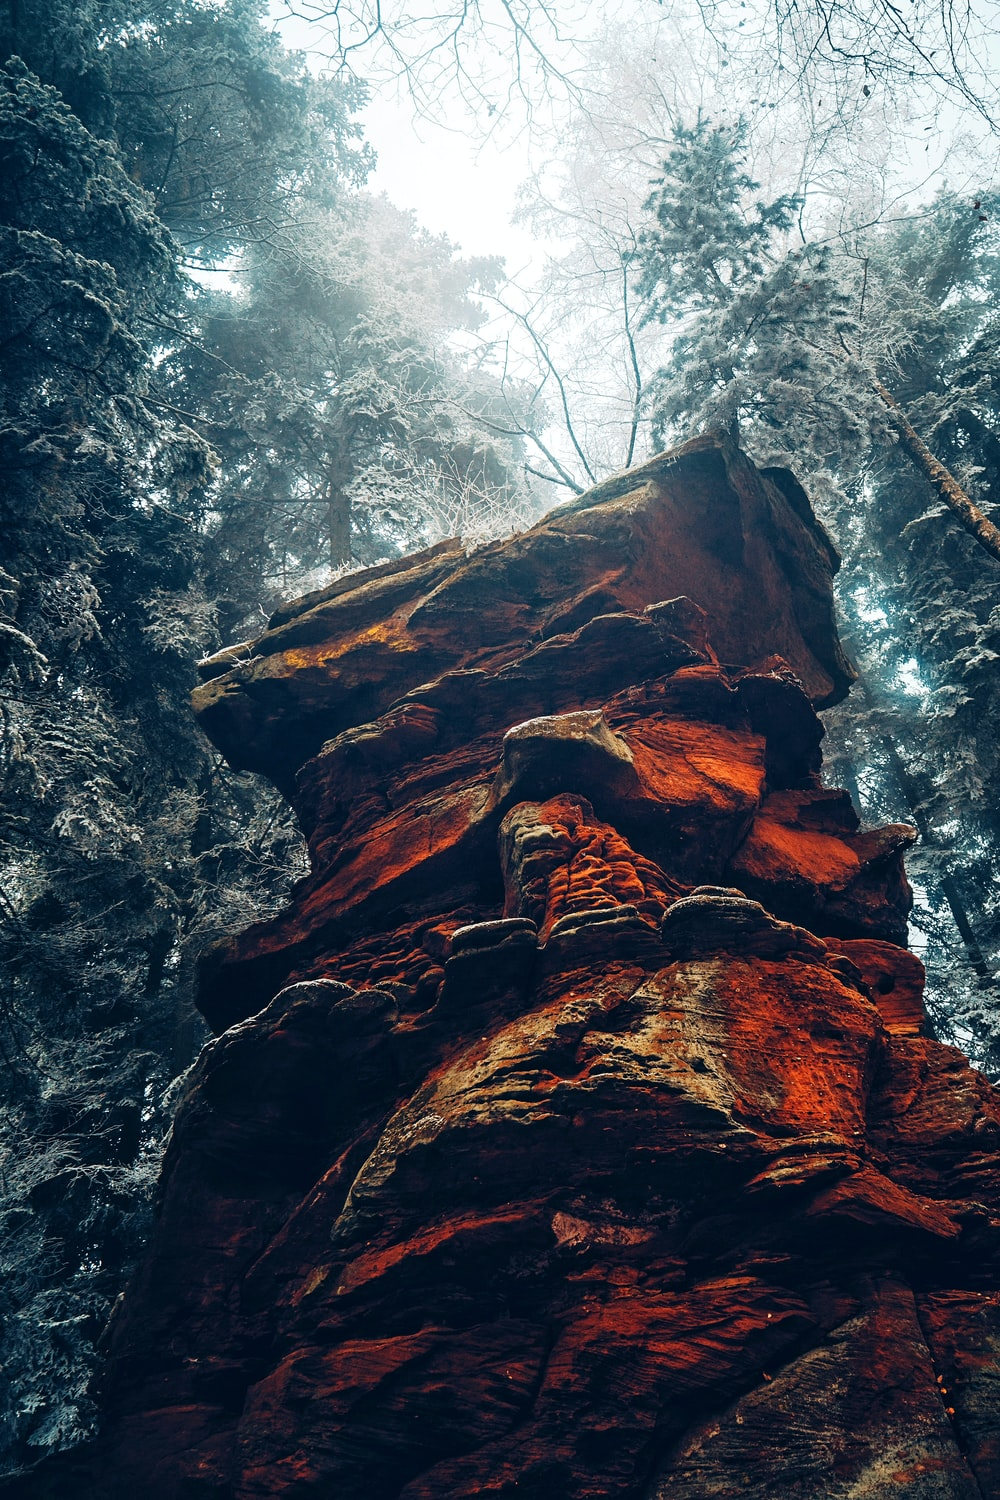 brown rock formation in forest